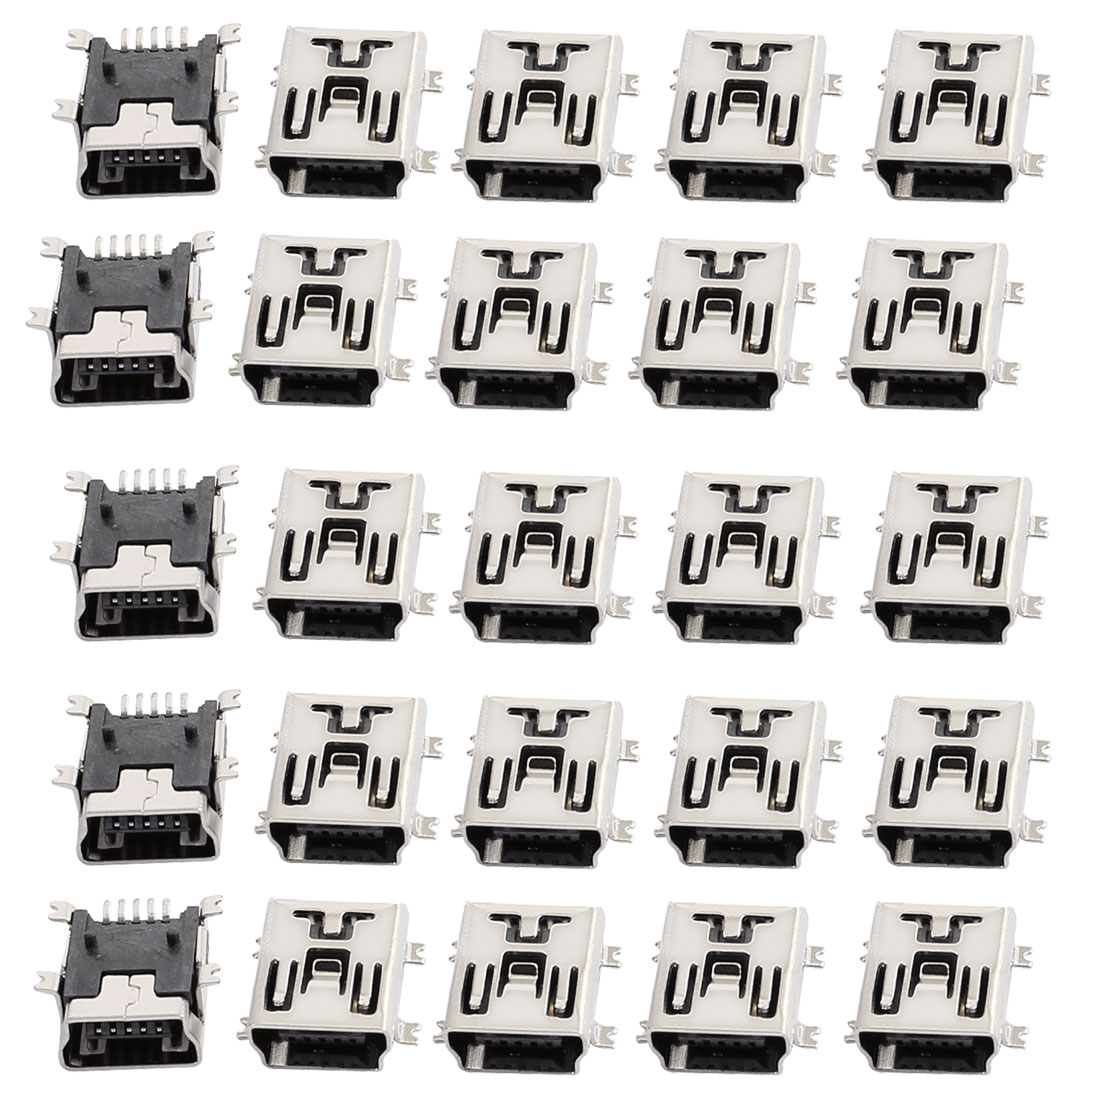 25pcs Mini USB 5 Pin Type B DIP Panel Mount Female Jack Socket Connector Adapter